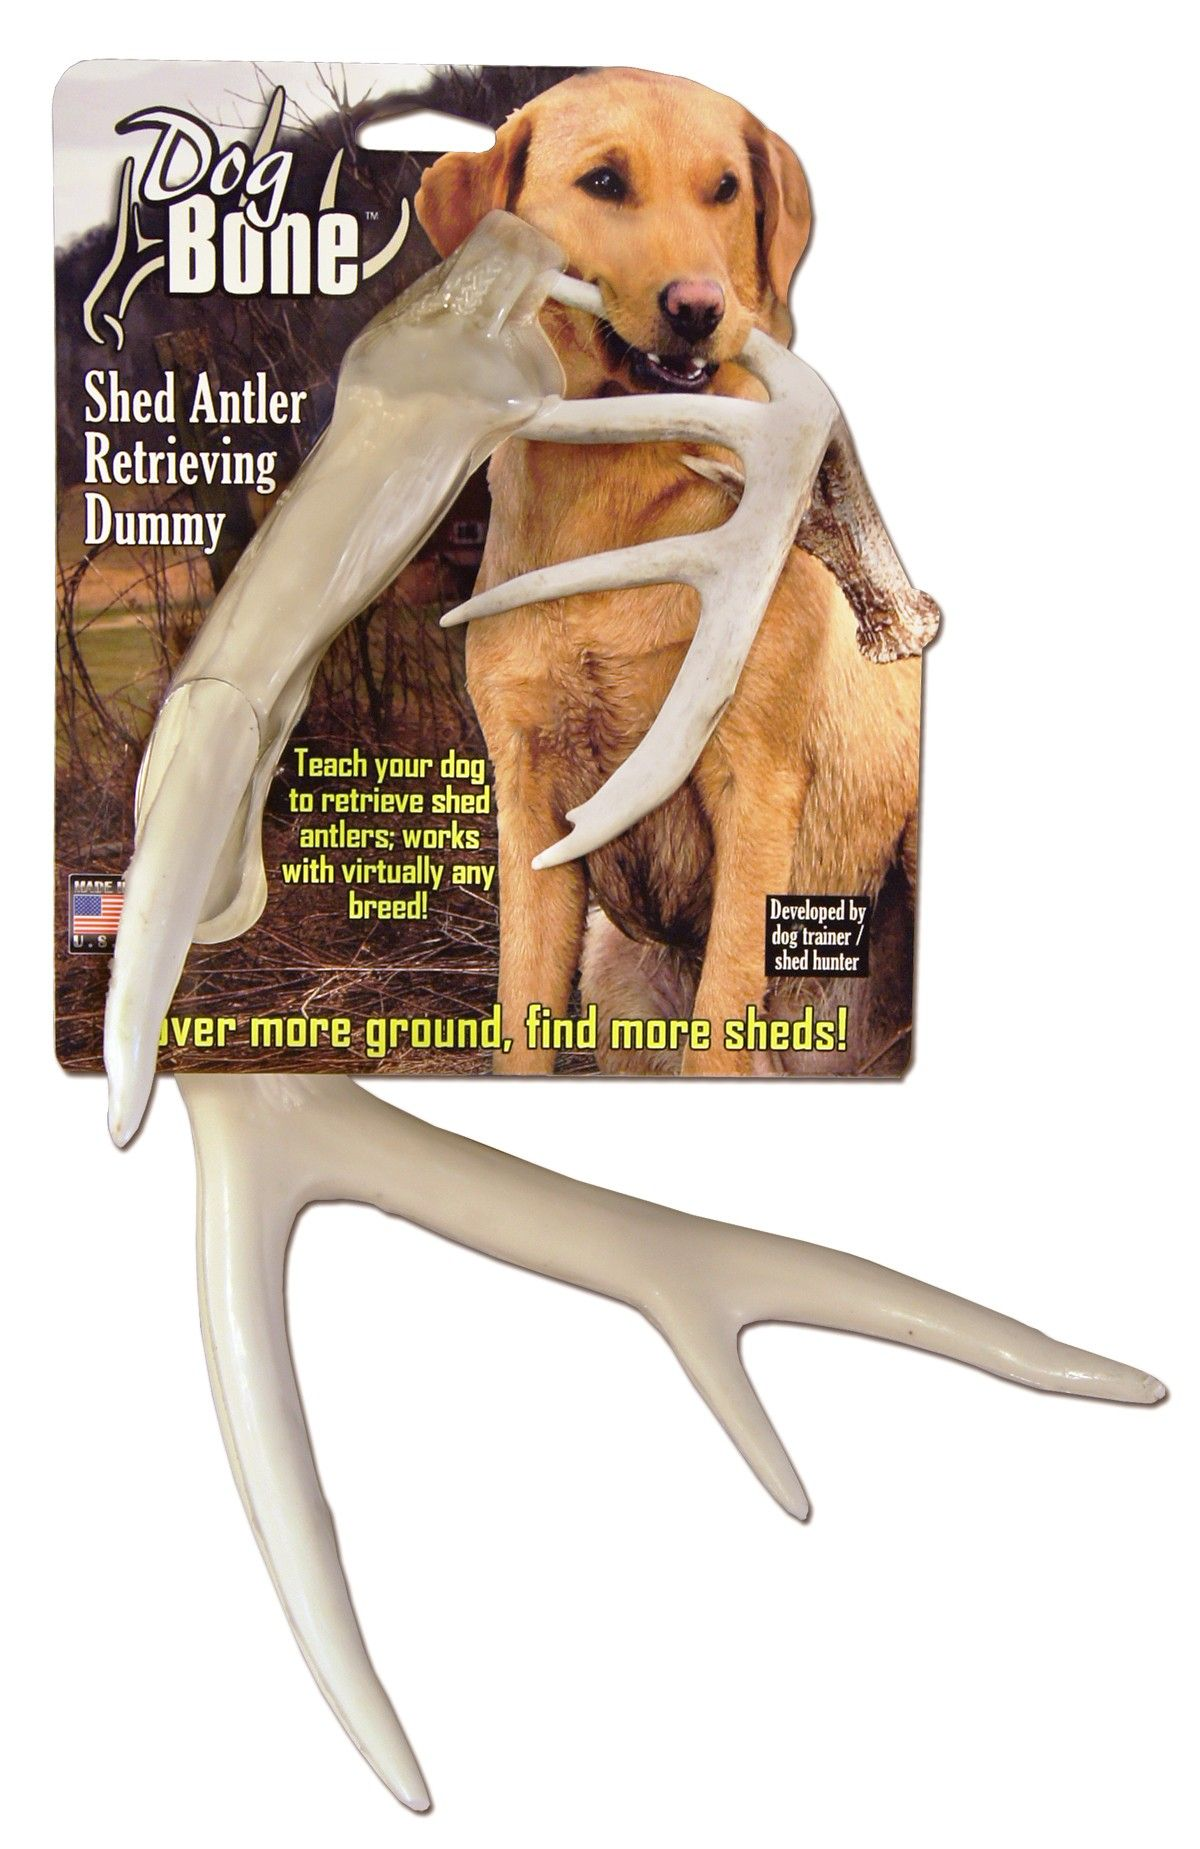 Dogbone Shed Antler Dog Retrieving And Training Dummy White By